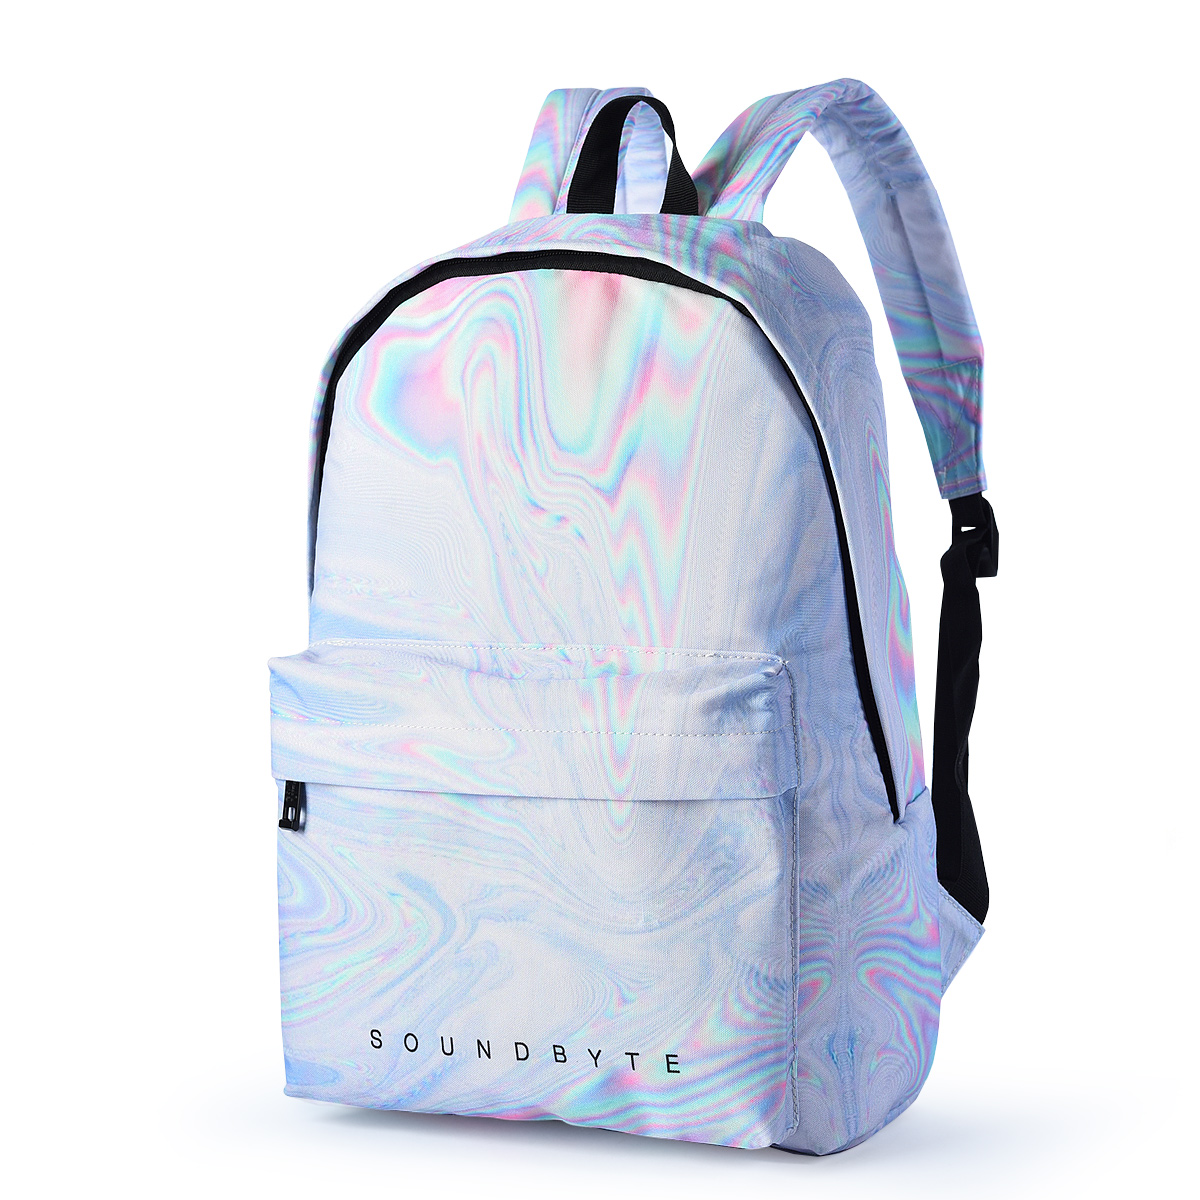 Canvas Backpack Bookbag School-Bag Rucksack Travel Holographic Street White Fashion Women